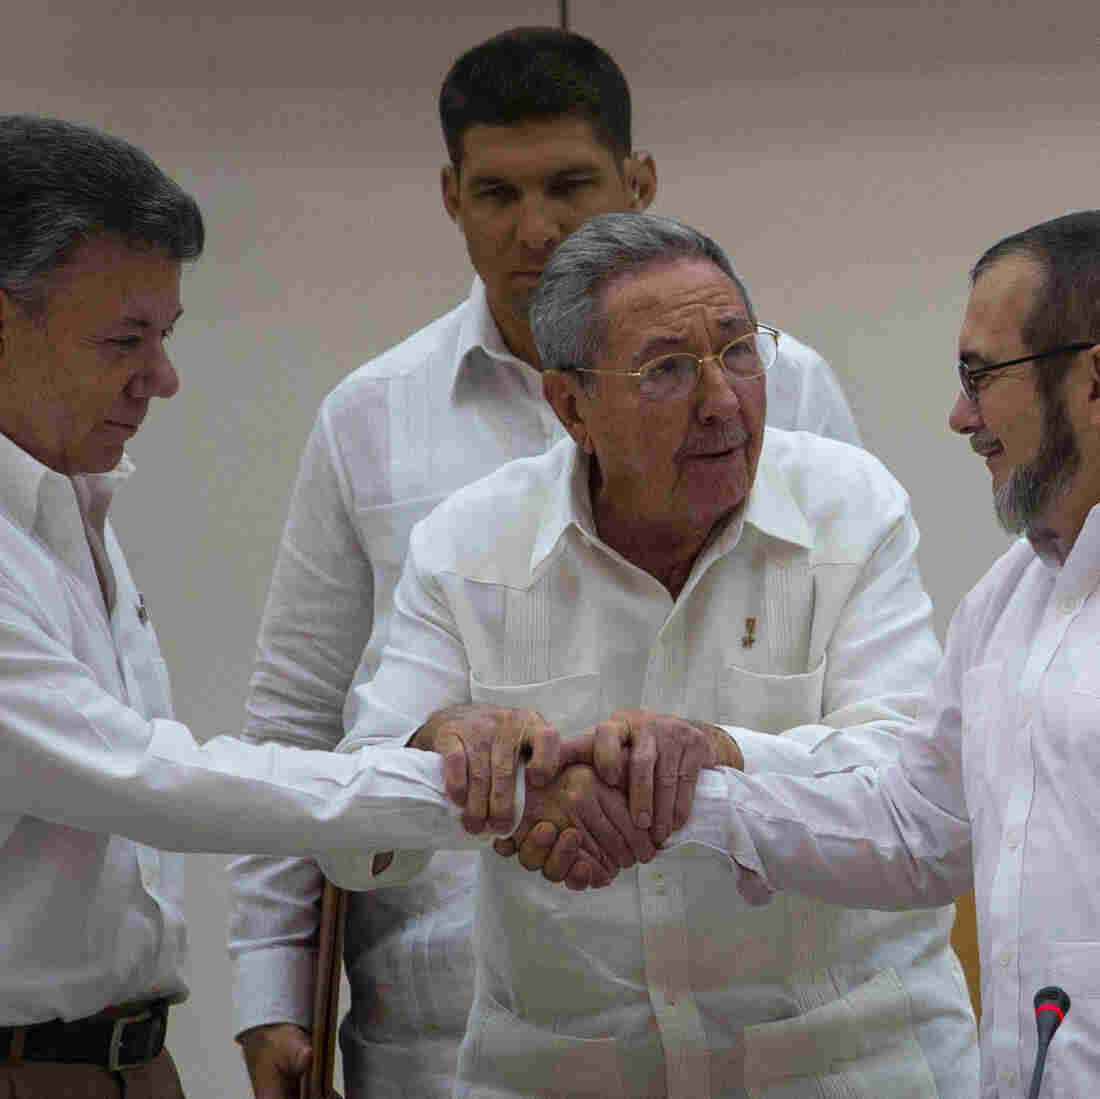 Cuba's President Raul Castro (center) encourages Colombian President Juan Manuel Santos (left) and the commander of the Revolutionary Armed Forces of Colombia or FARC, known as Timochenko, to shake hands, in Havana, Cuba, Wednesday.